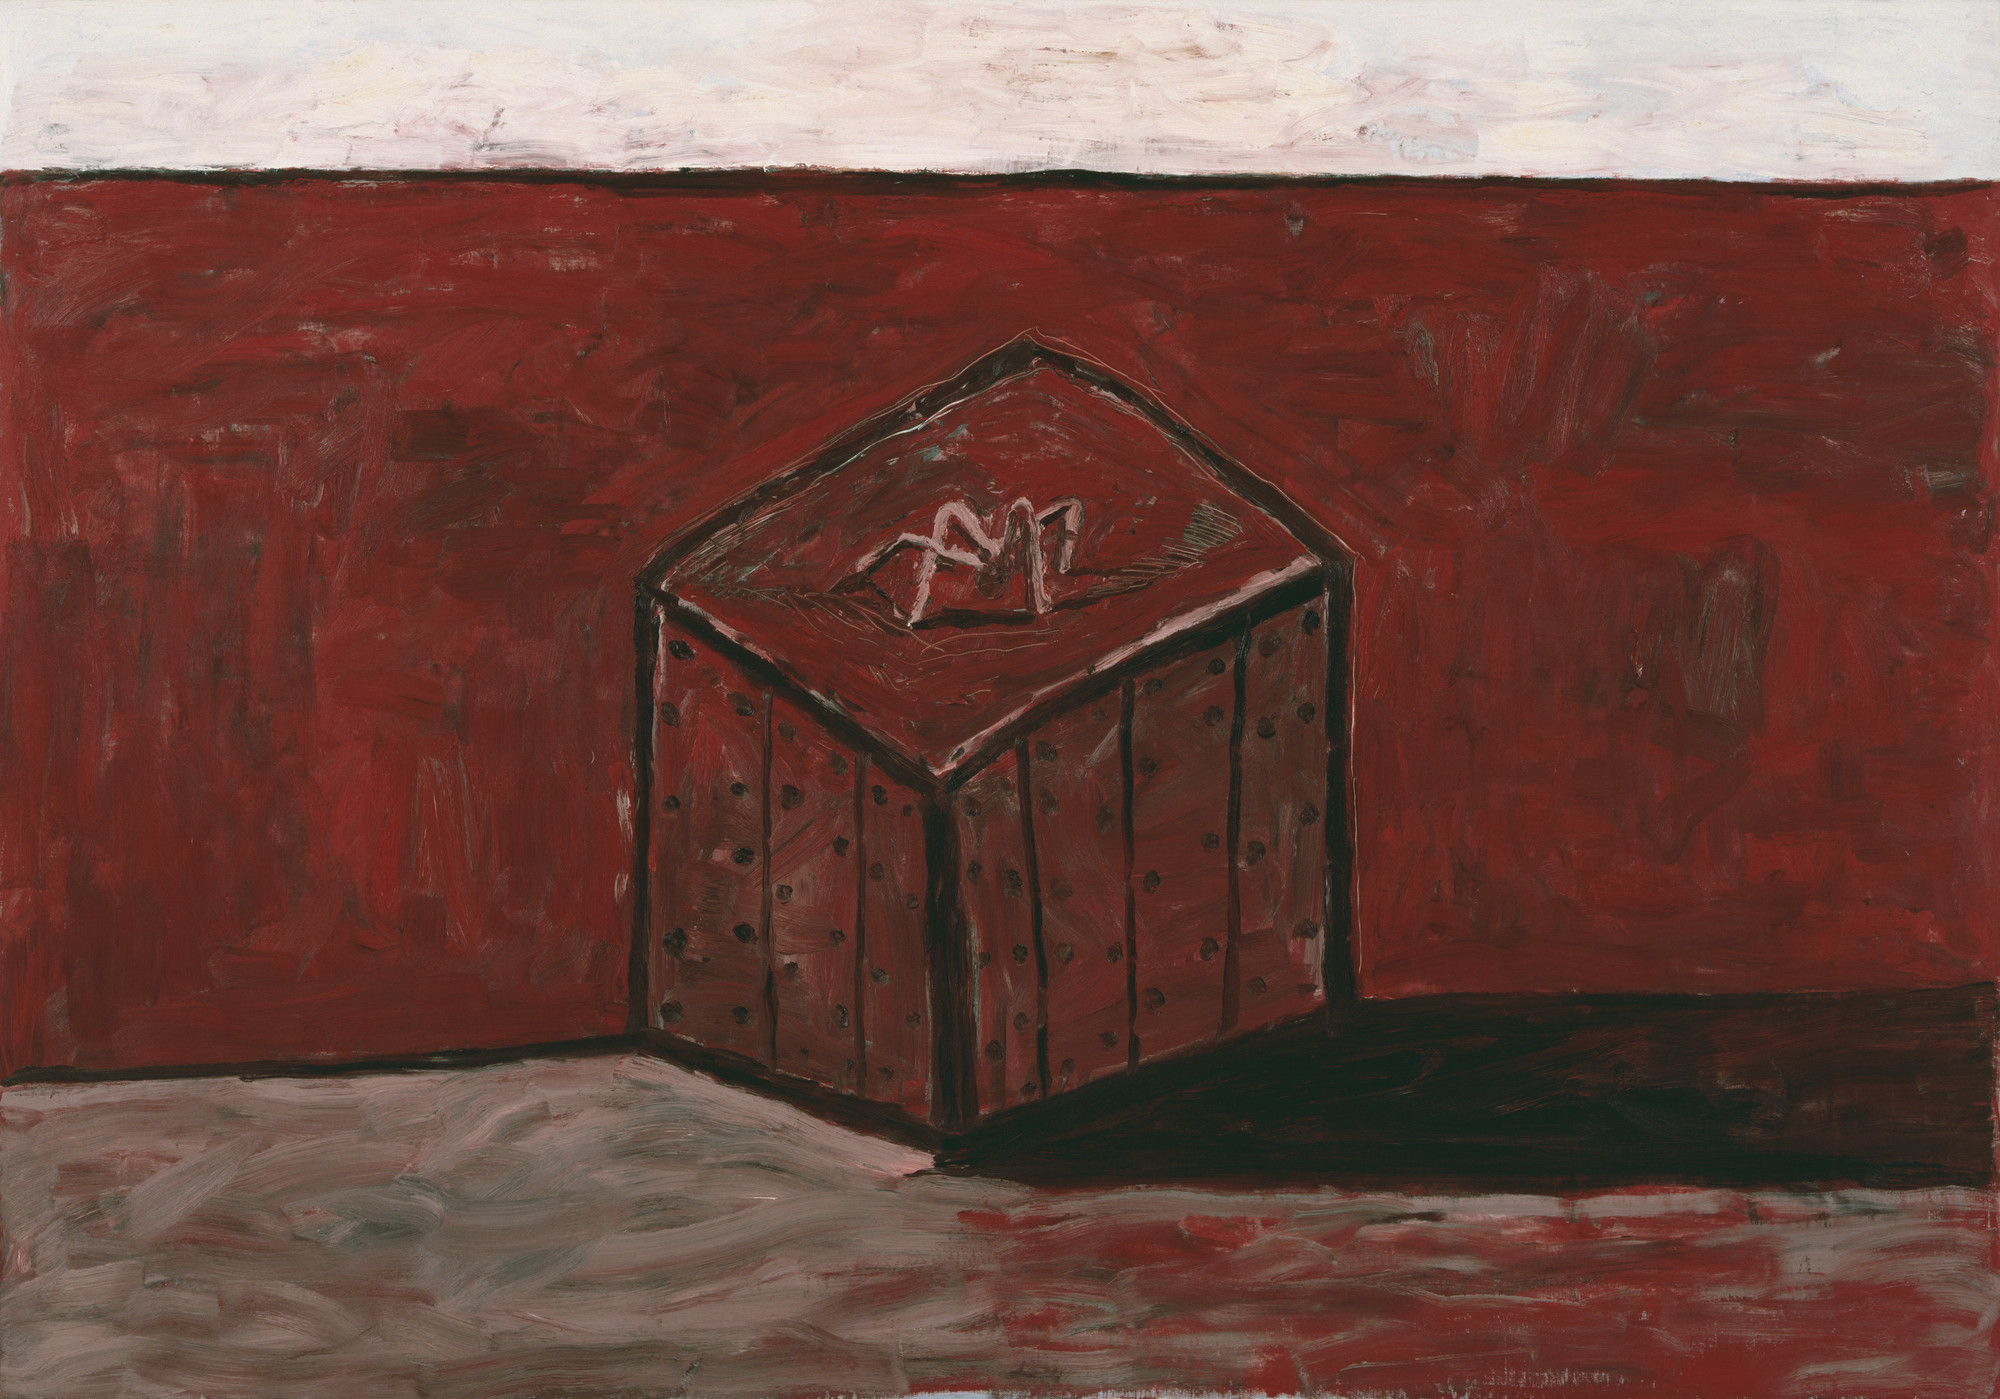 Philip Guston. Box and Shadow. 1978